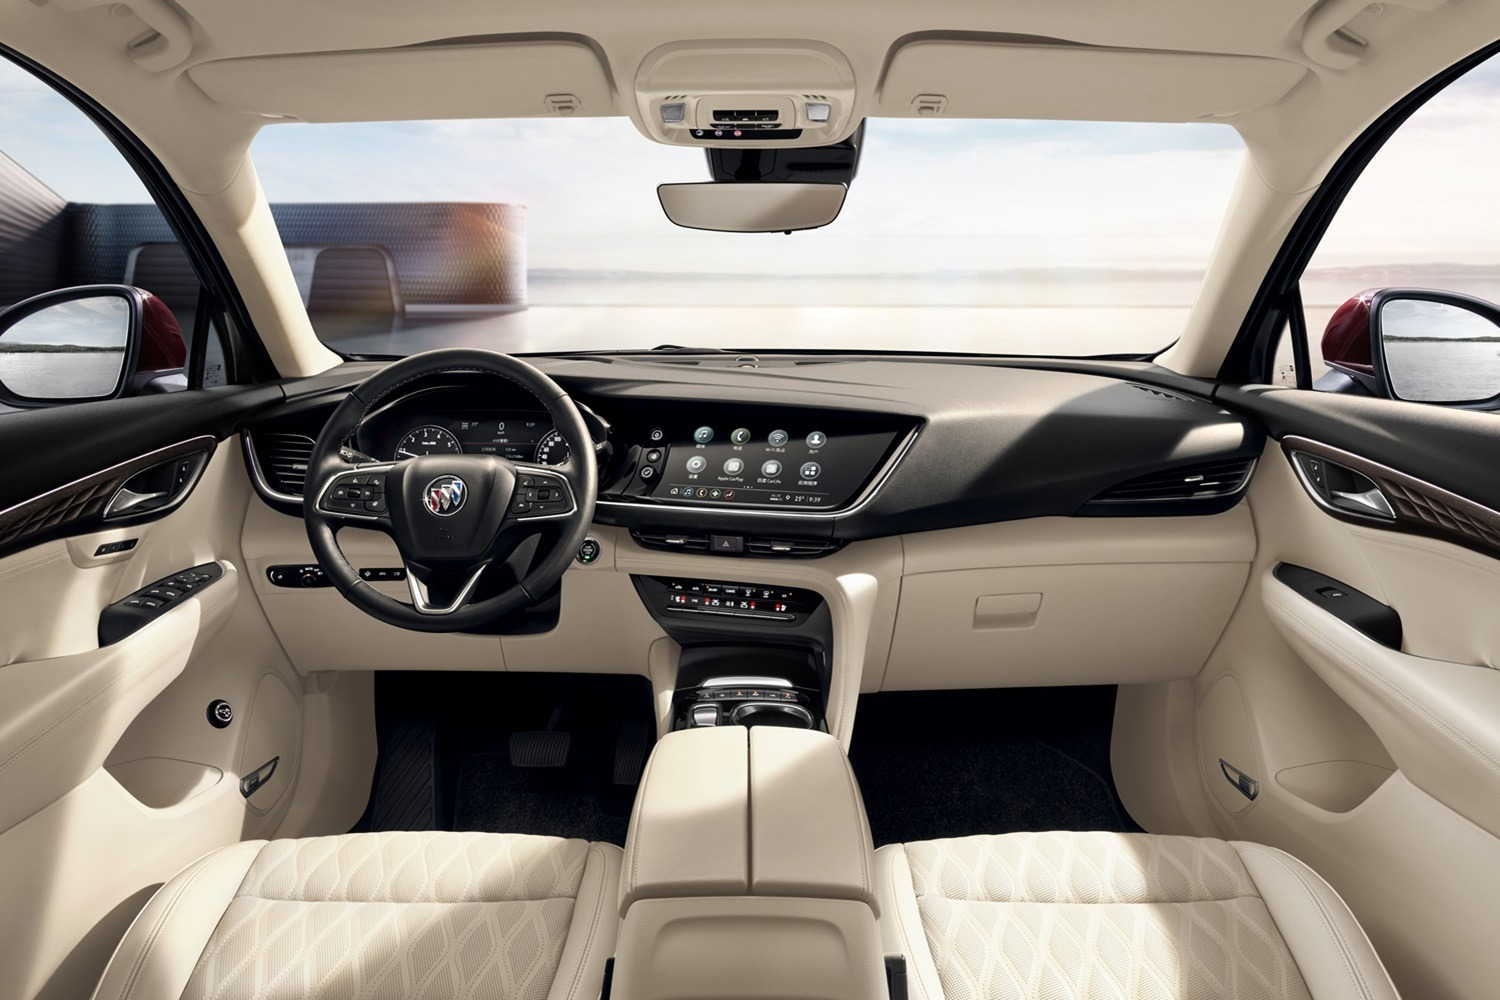 2021 Buick Envision Interior Revealed In Brand New Photos 2022 Buick Riviera Engine, History, Dashboard